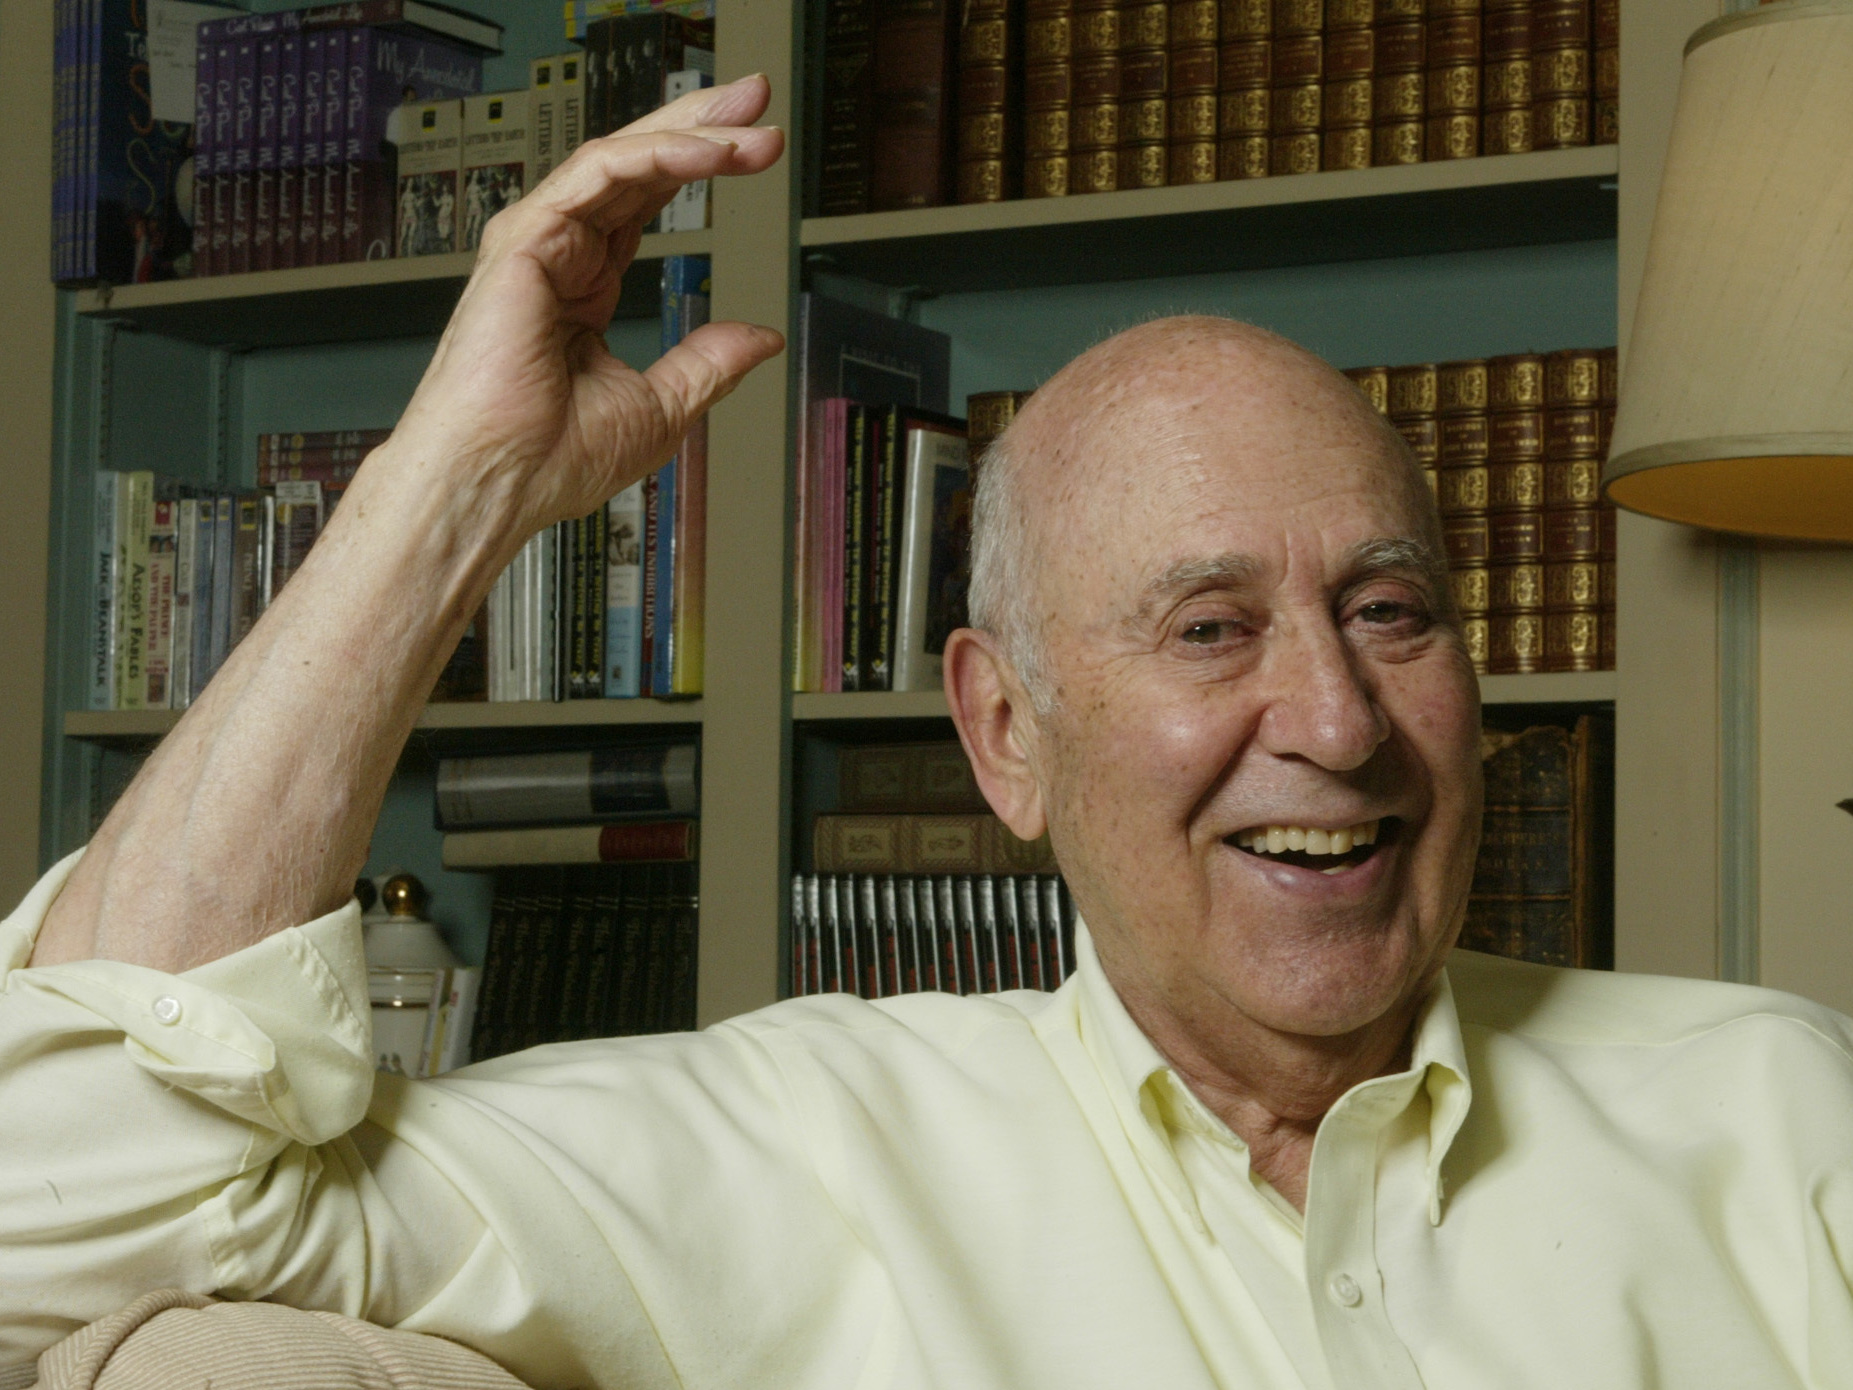 Actor, director and author Carl Reiner, pictured at his home in Beverly Hills, Calif., in May 2003.